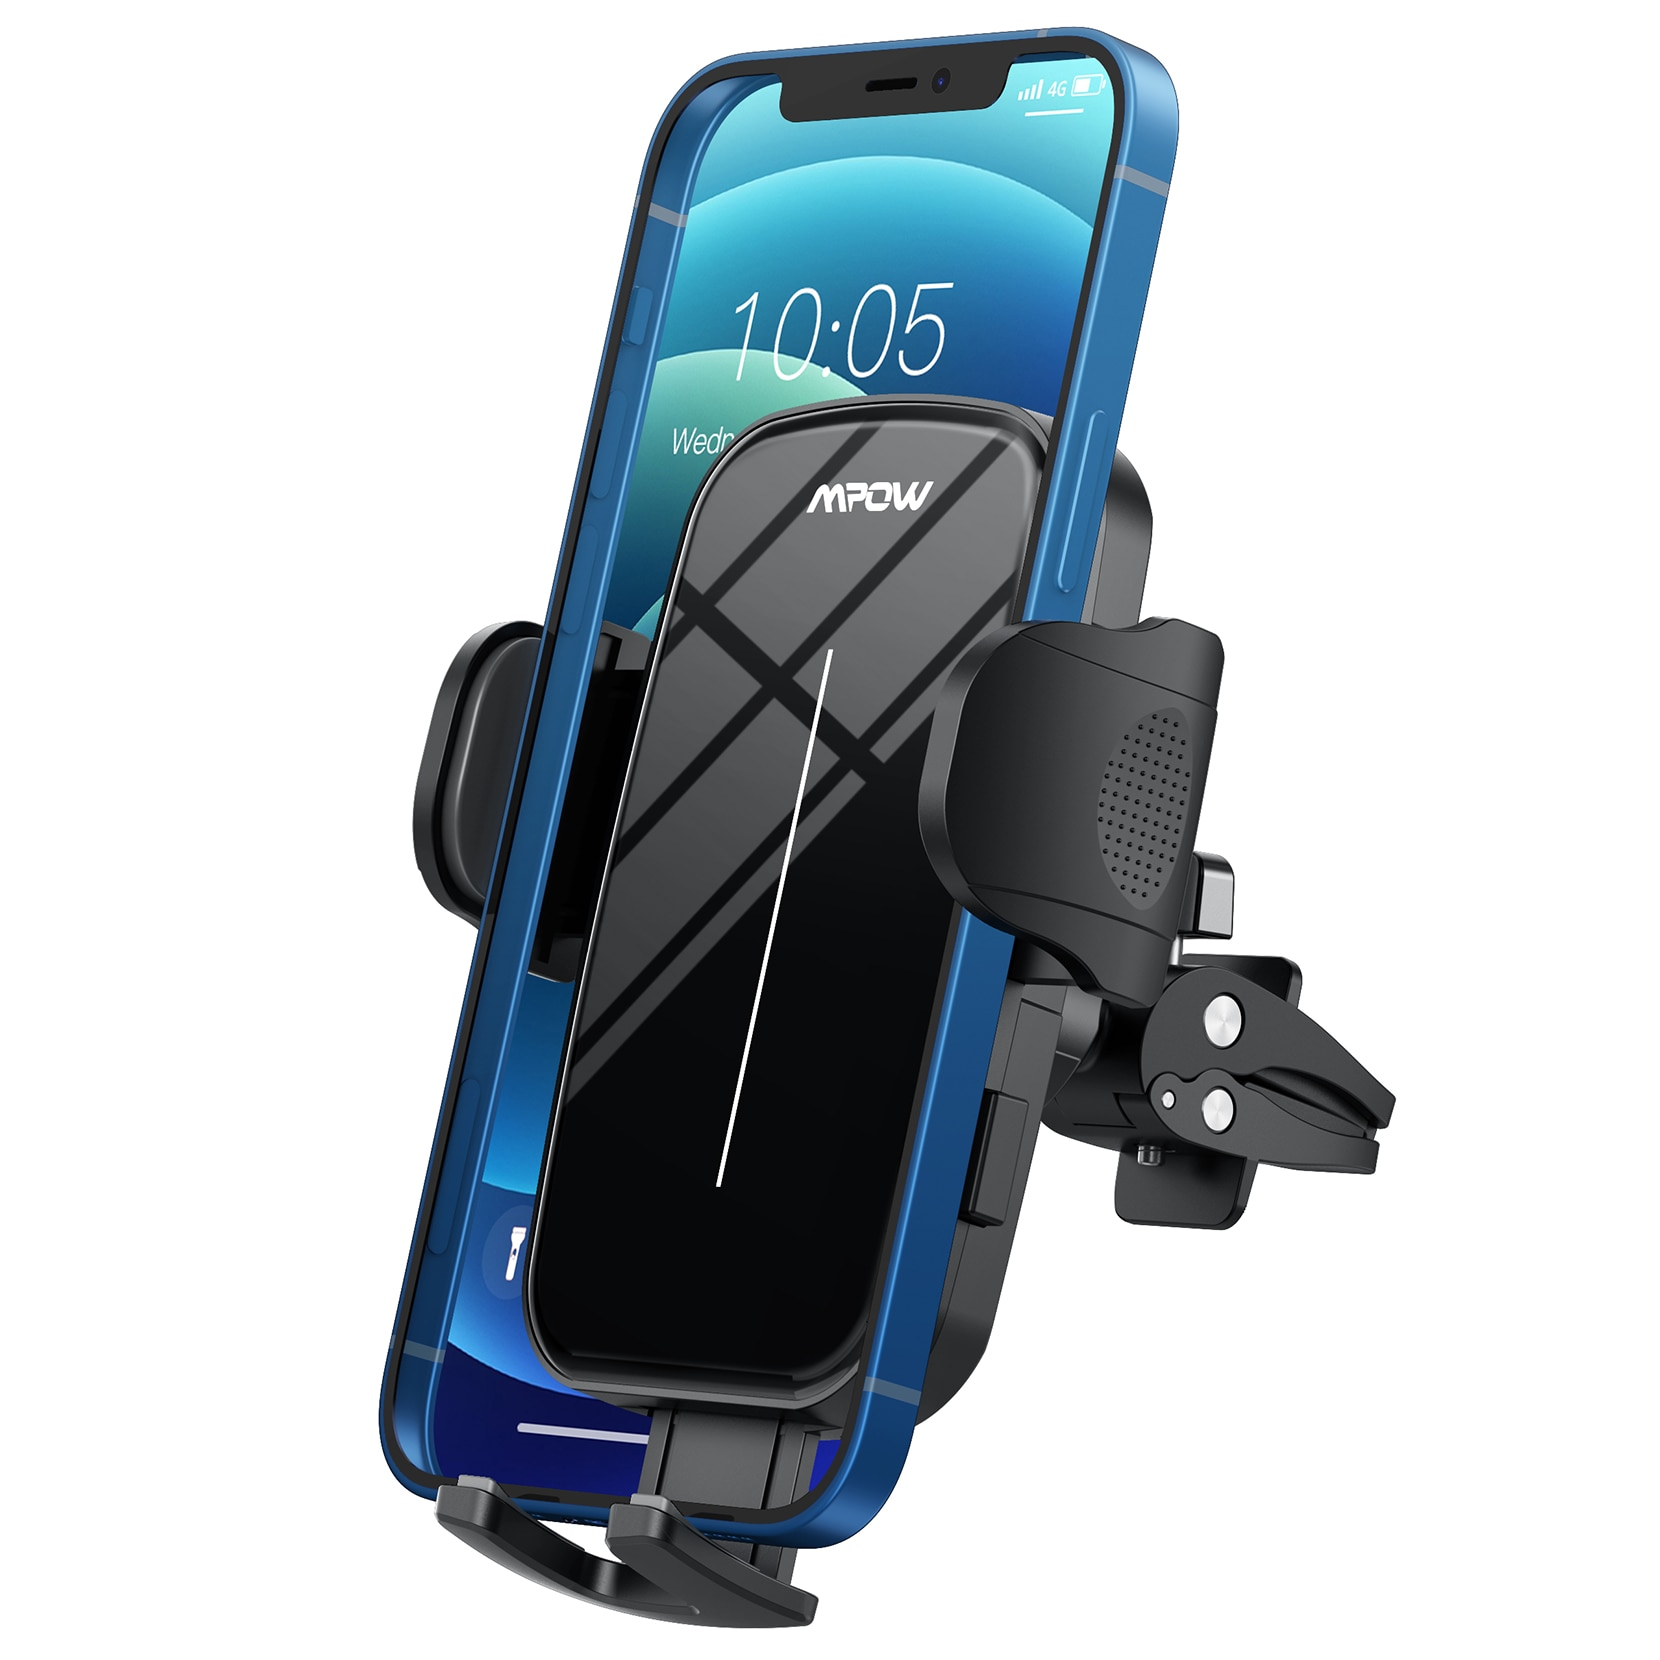 Hf05615d60f2340bd87e956d1c656222e0 - Mpow CA174 Universal Car Phone Mount Air Vent Car Phone Holder with Stable Clip Compatible with iPhone 12 11 Pro Max XS 8 Galaxy